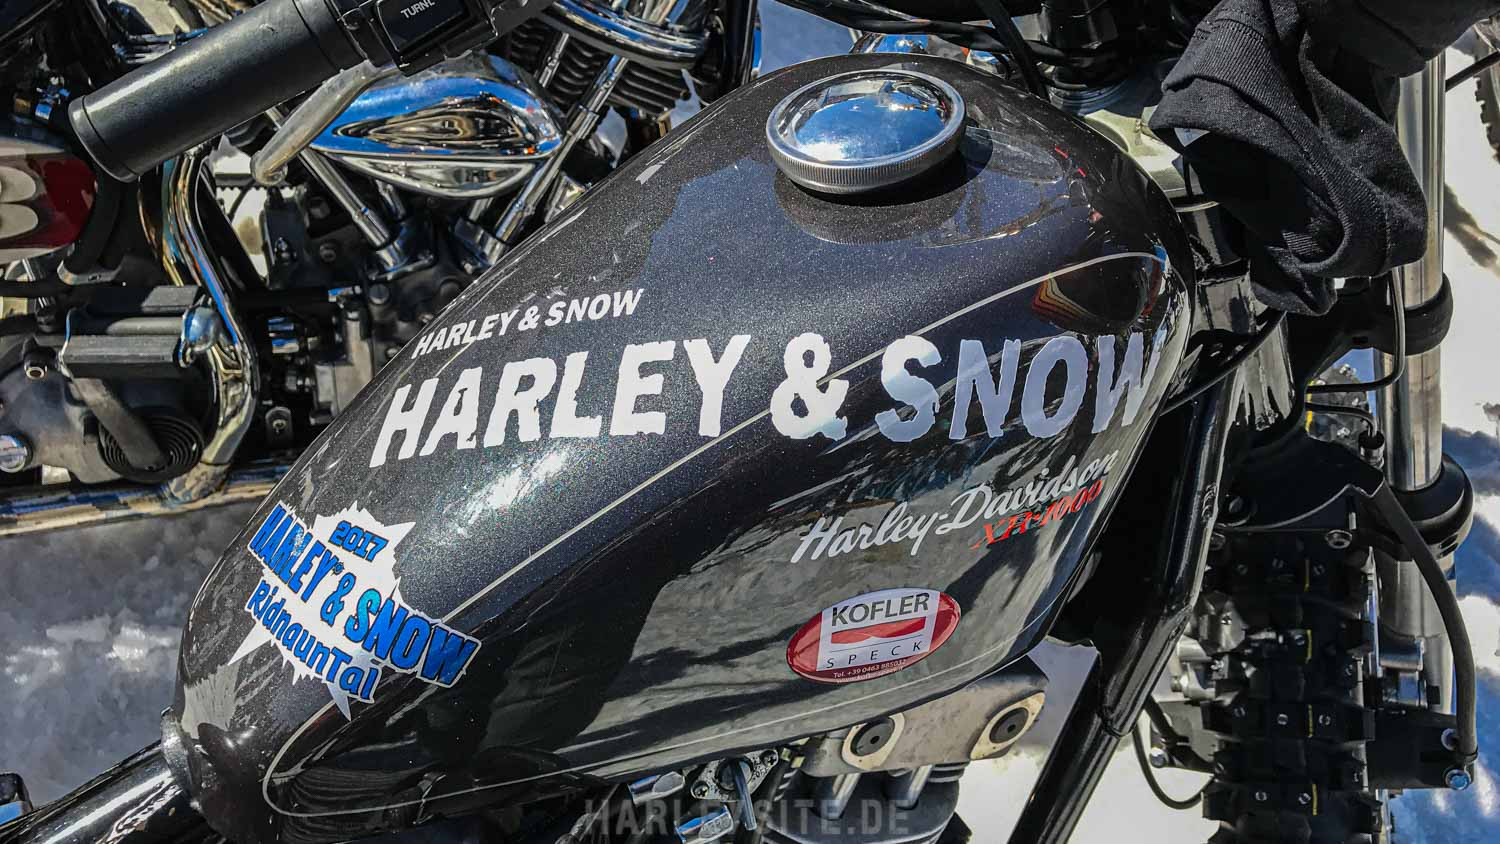 Harley and Snow Hillclimbing